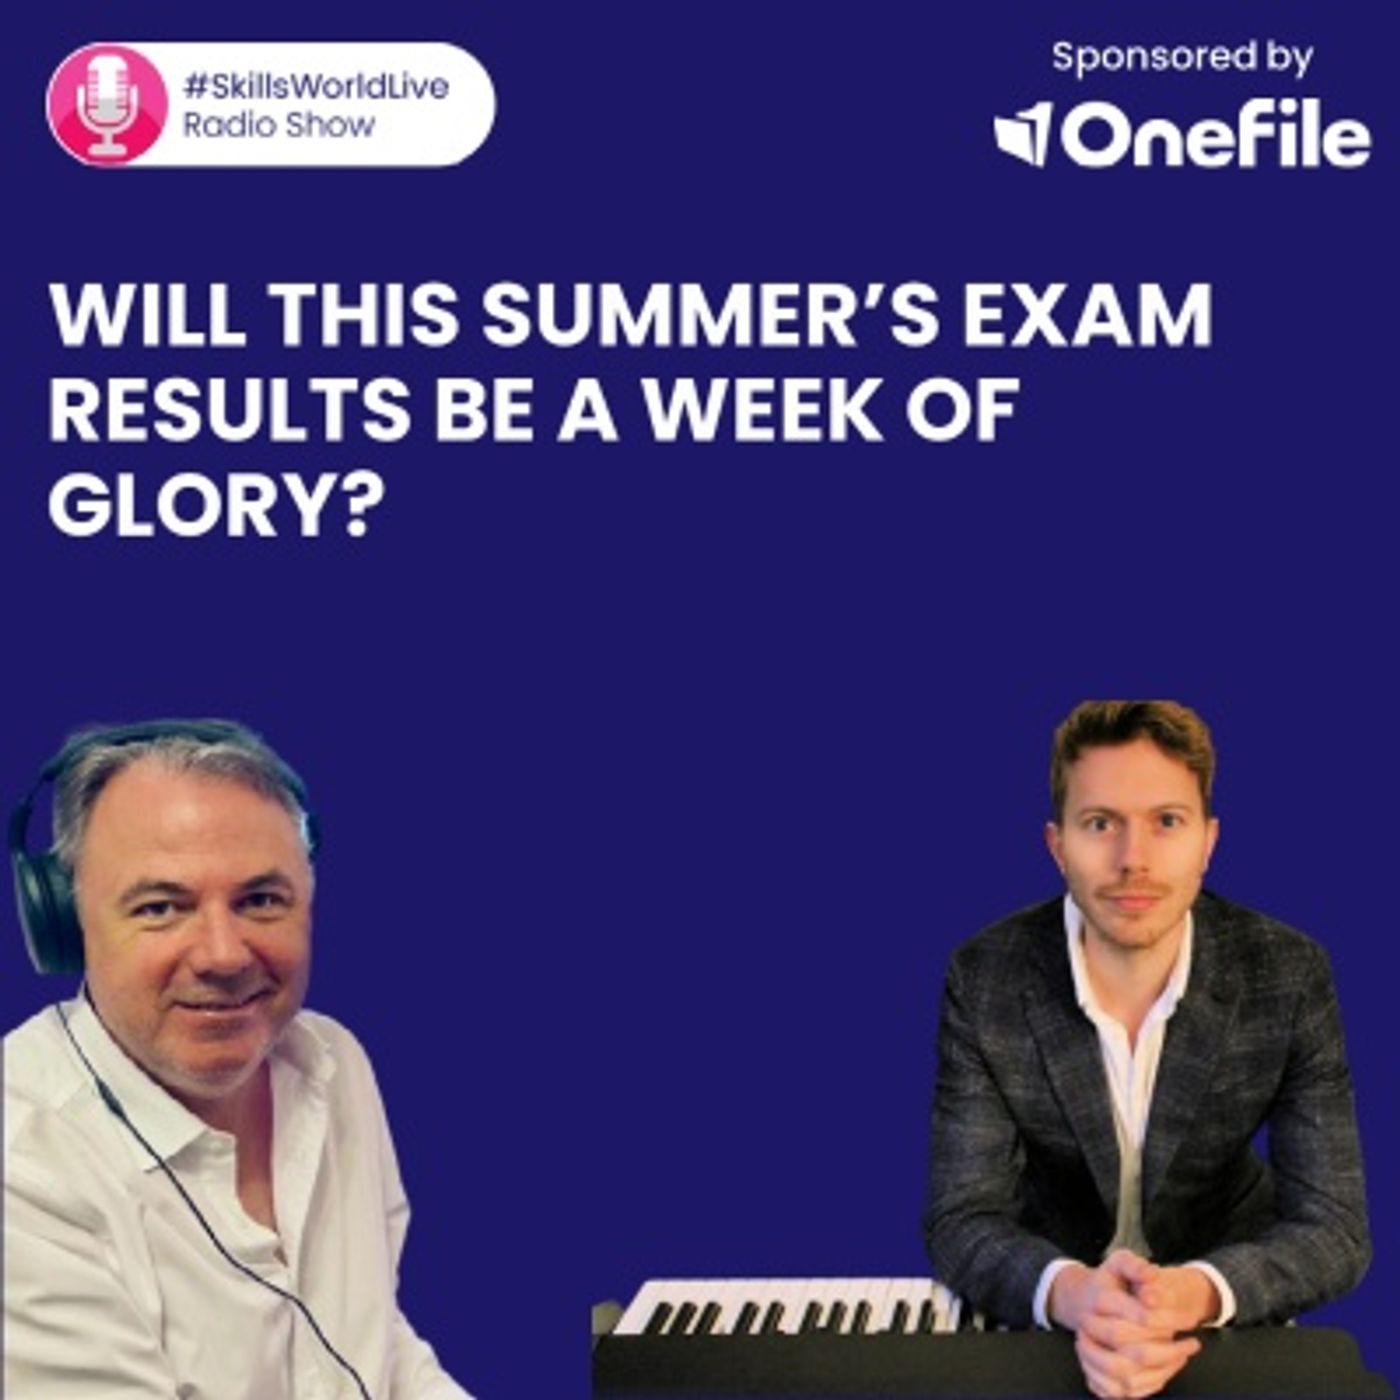 Will this summer's exam results be a week of glory? #SkillsWorldLive 3.4